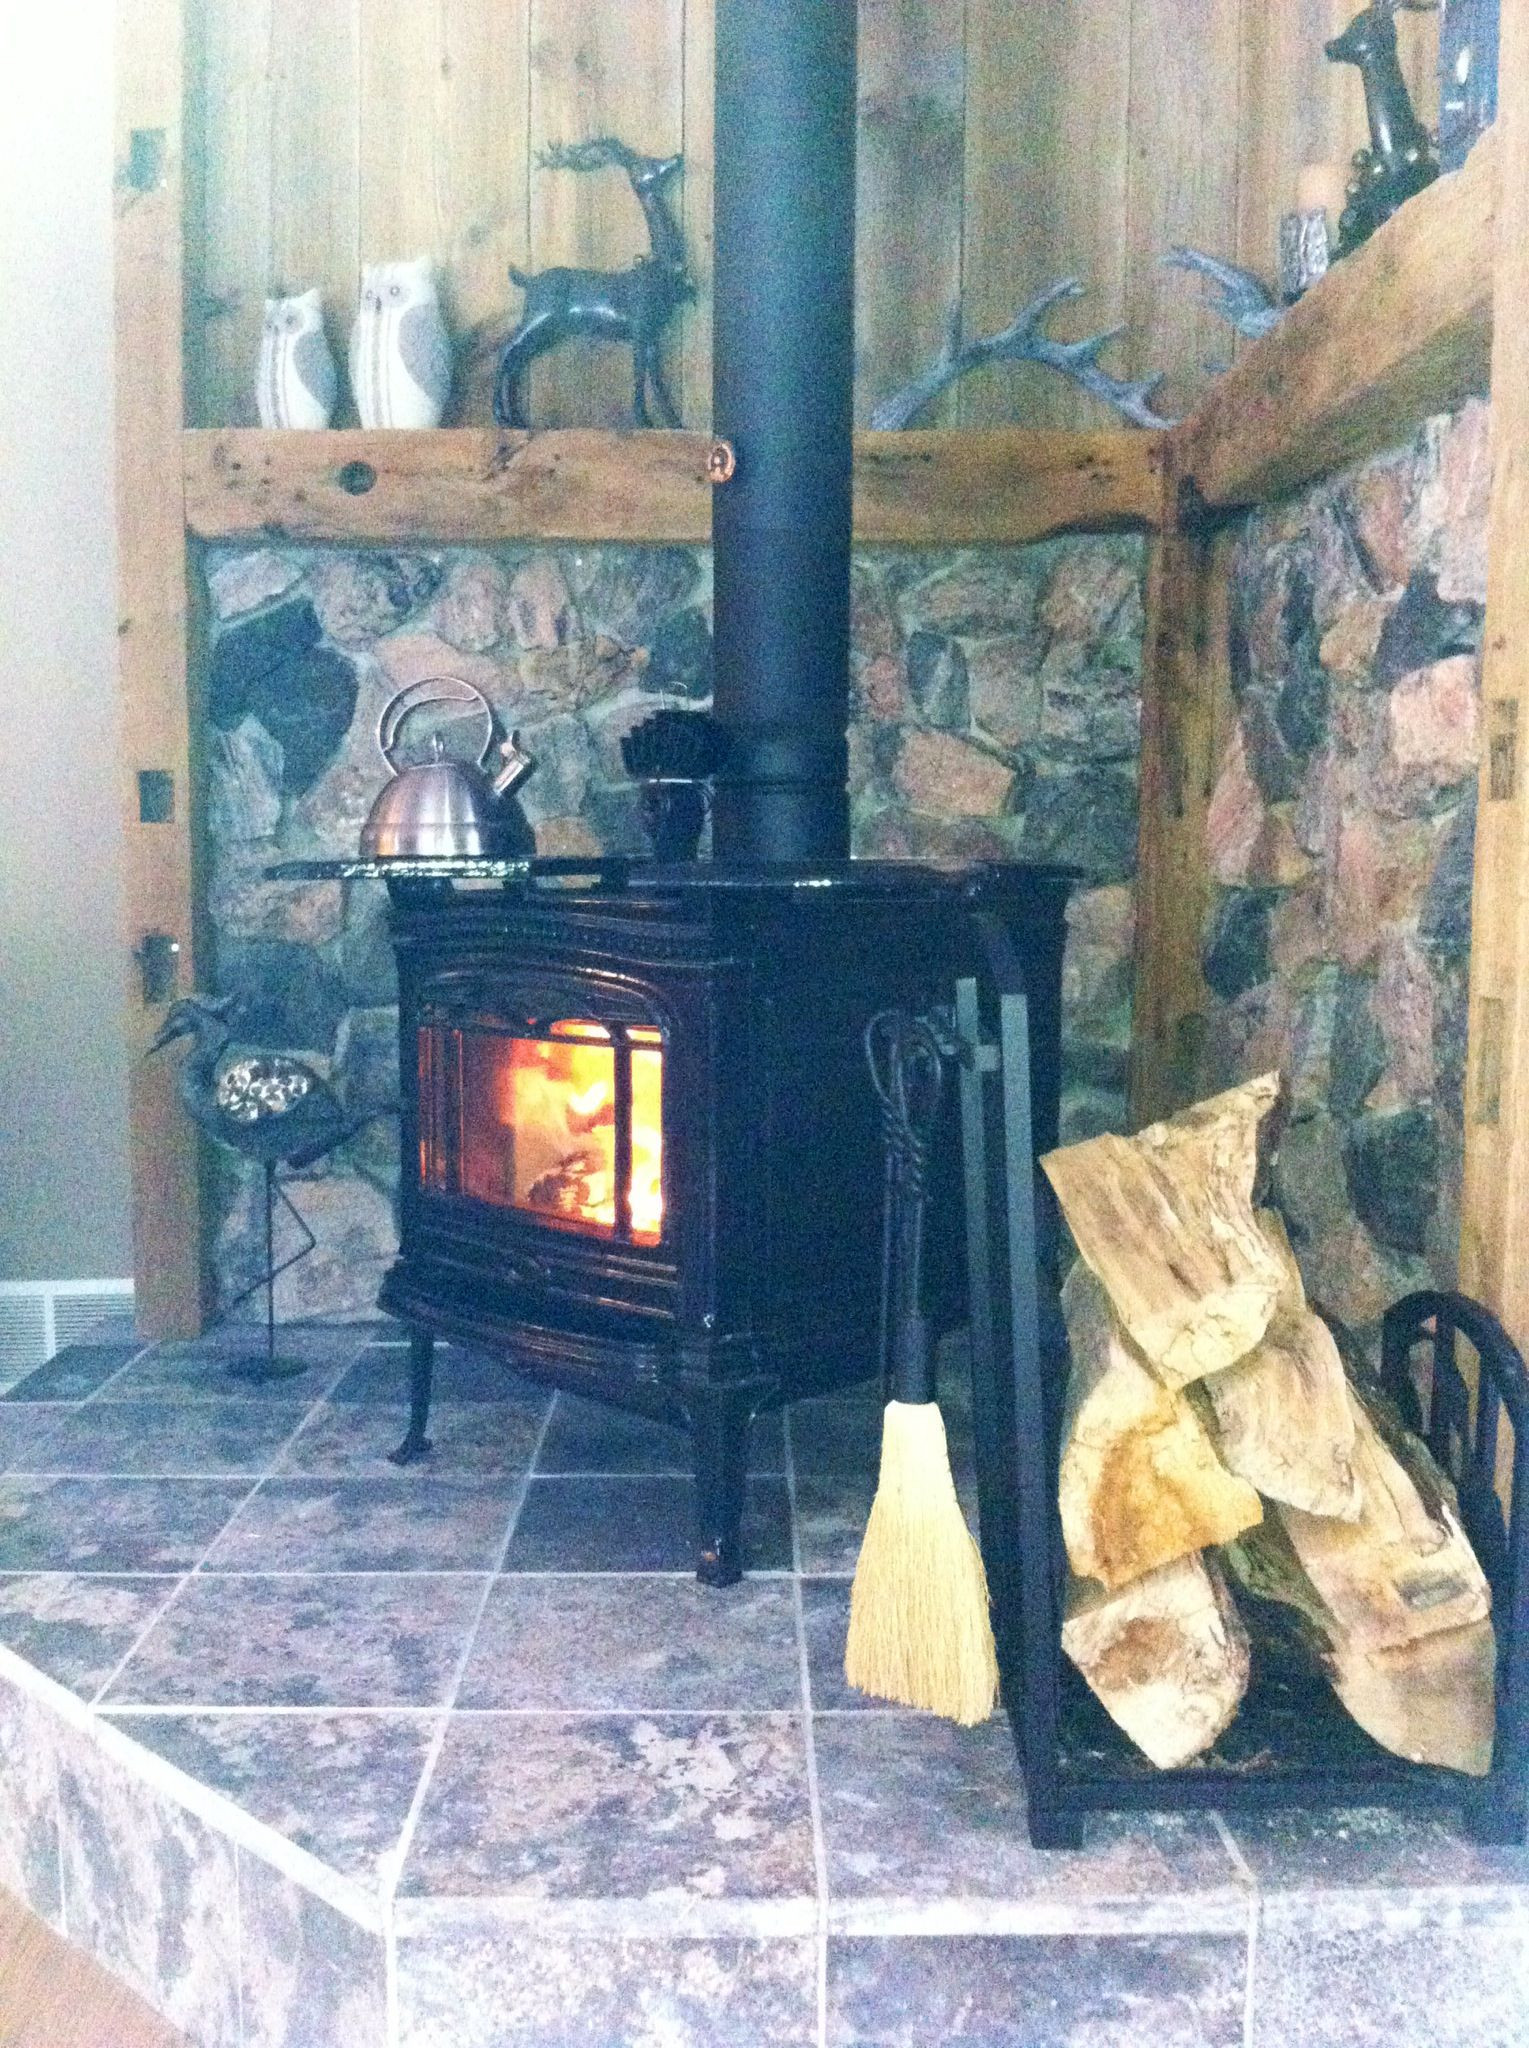 Wood stove surround ideas - Wood Stove Stone Hearth Mantel Other Ideas Http Www Gokitchenideas Com Installing Wood Stove Stone Wall Installing Wood Stove Stone Wall 2